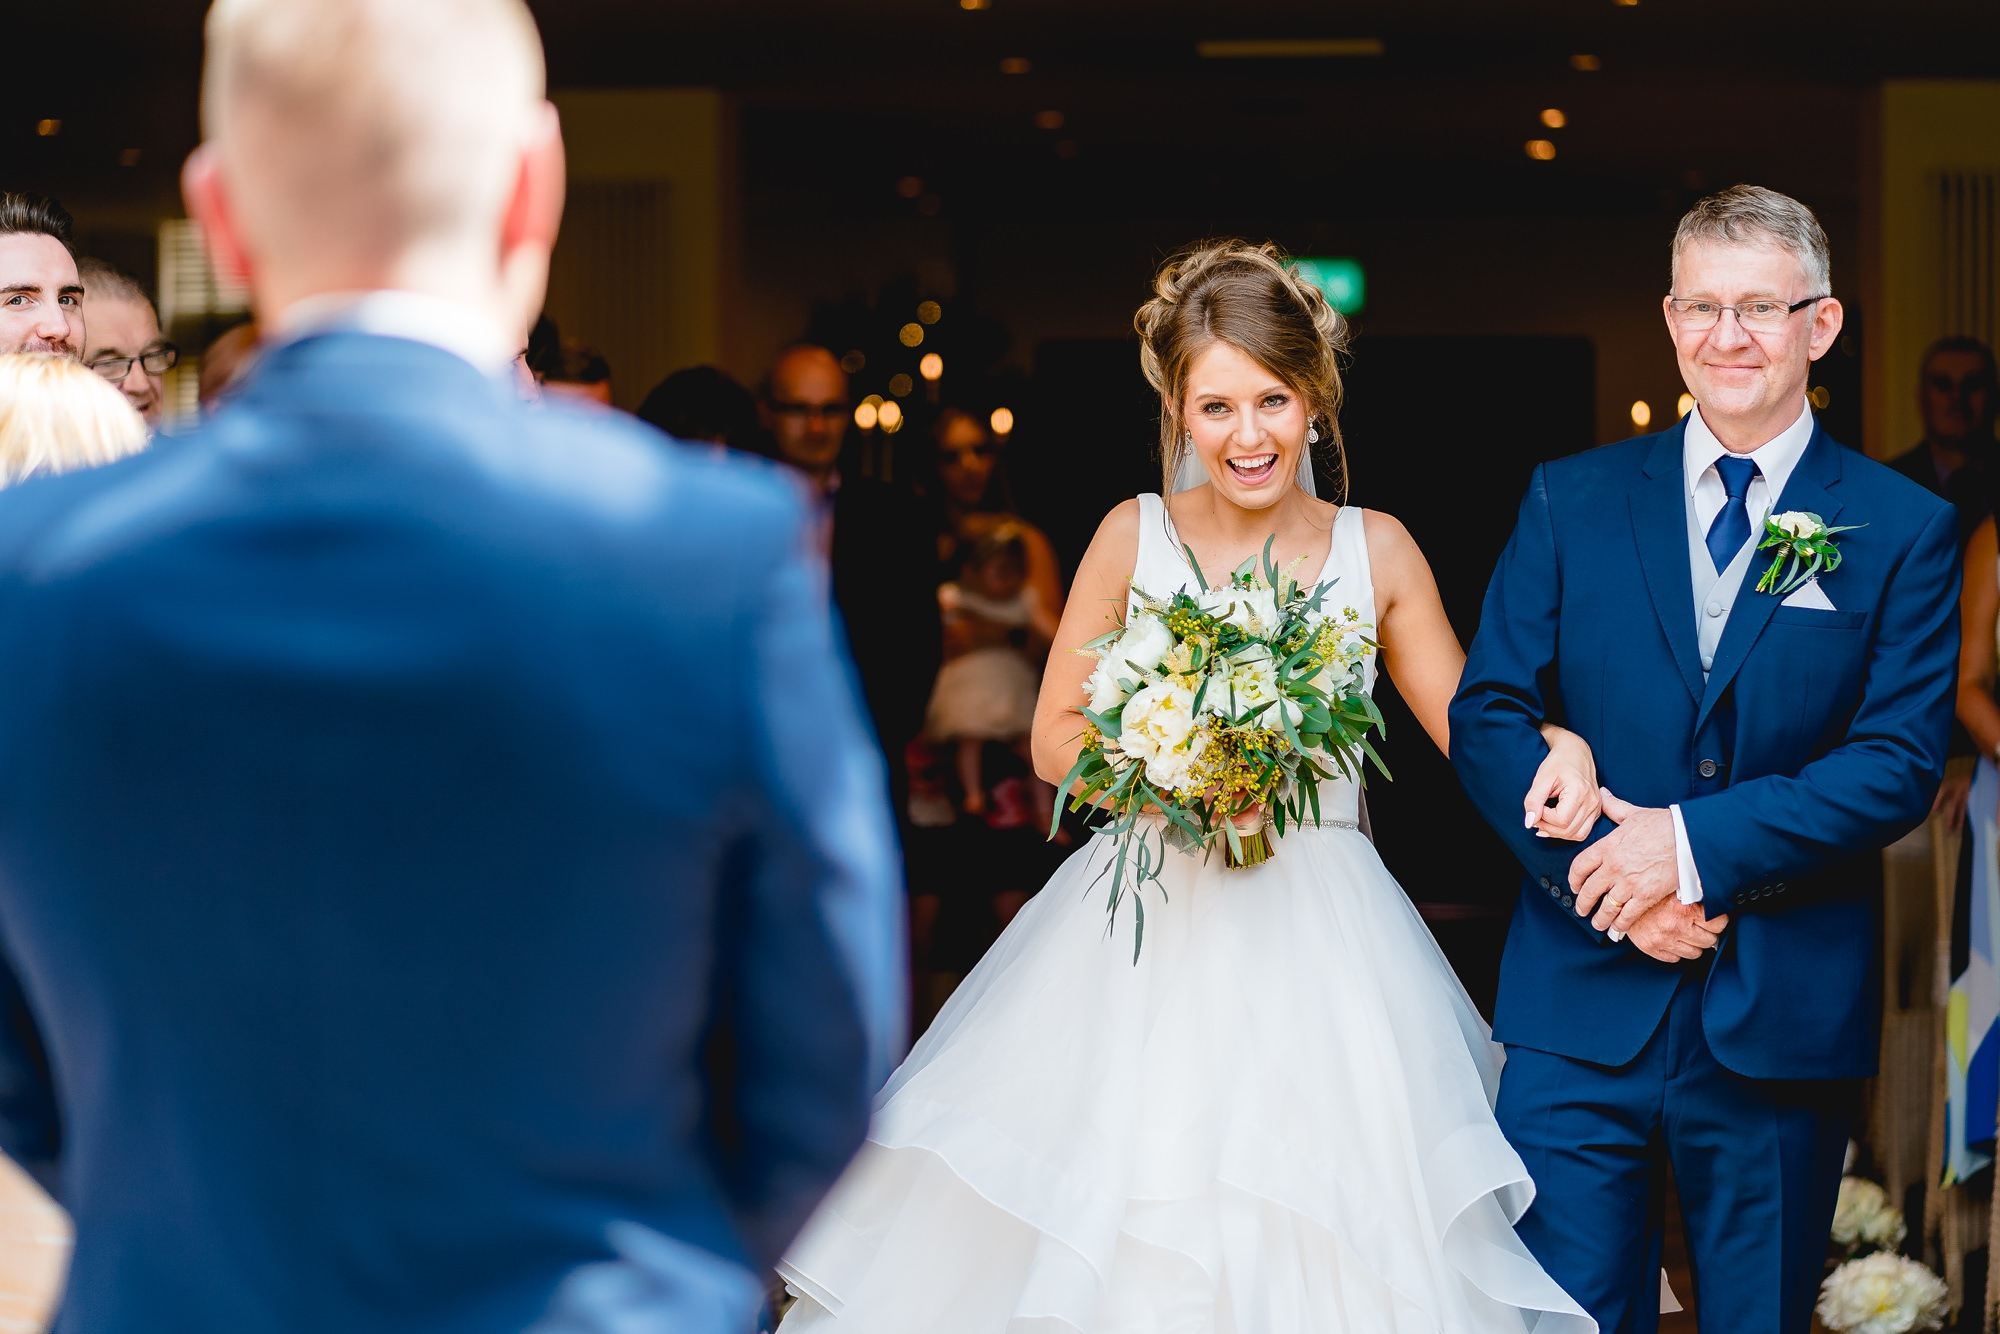 Mitton-Hall-Wedding-Photographer_0011-1.jpg